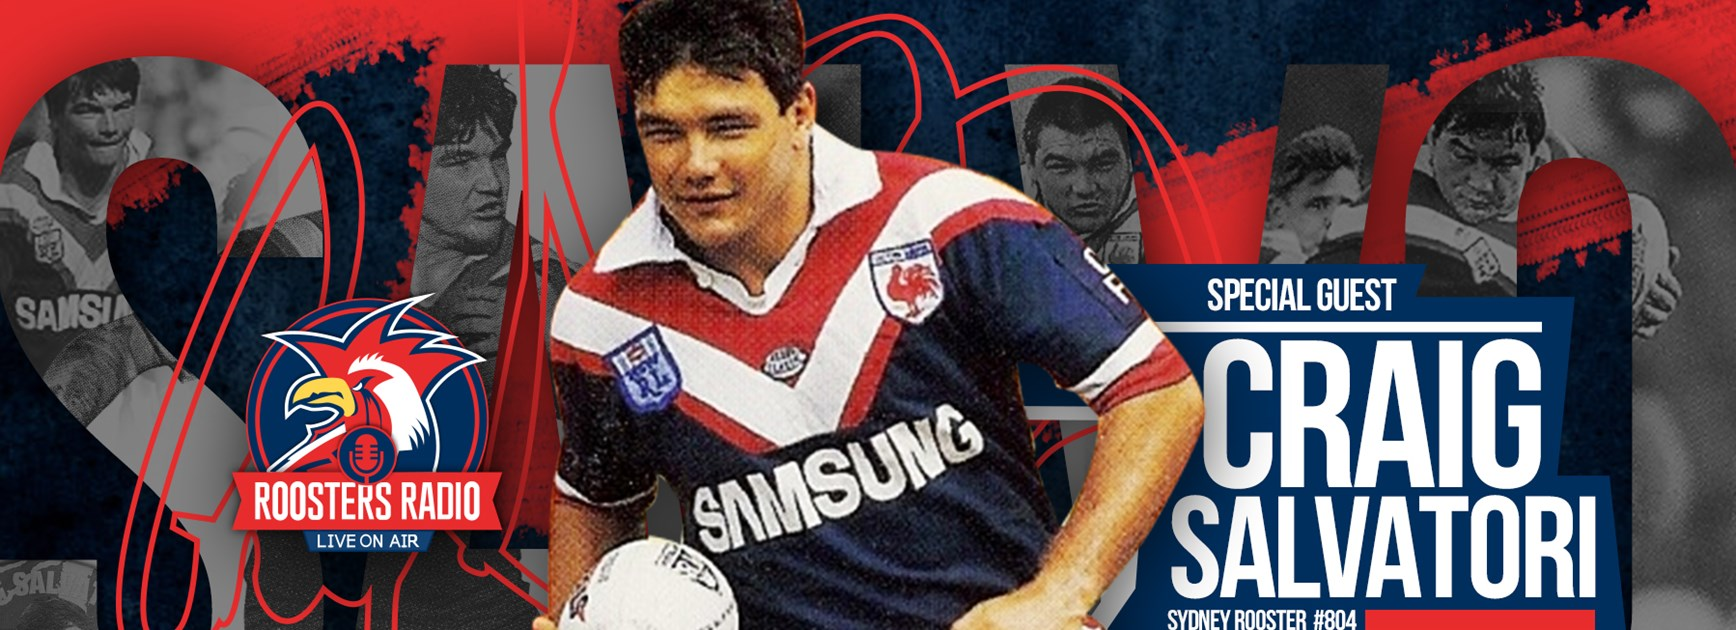 Roosters Radio | Special Guest Craig Salvatori